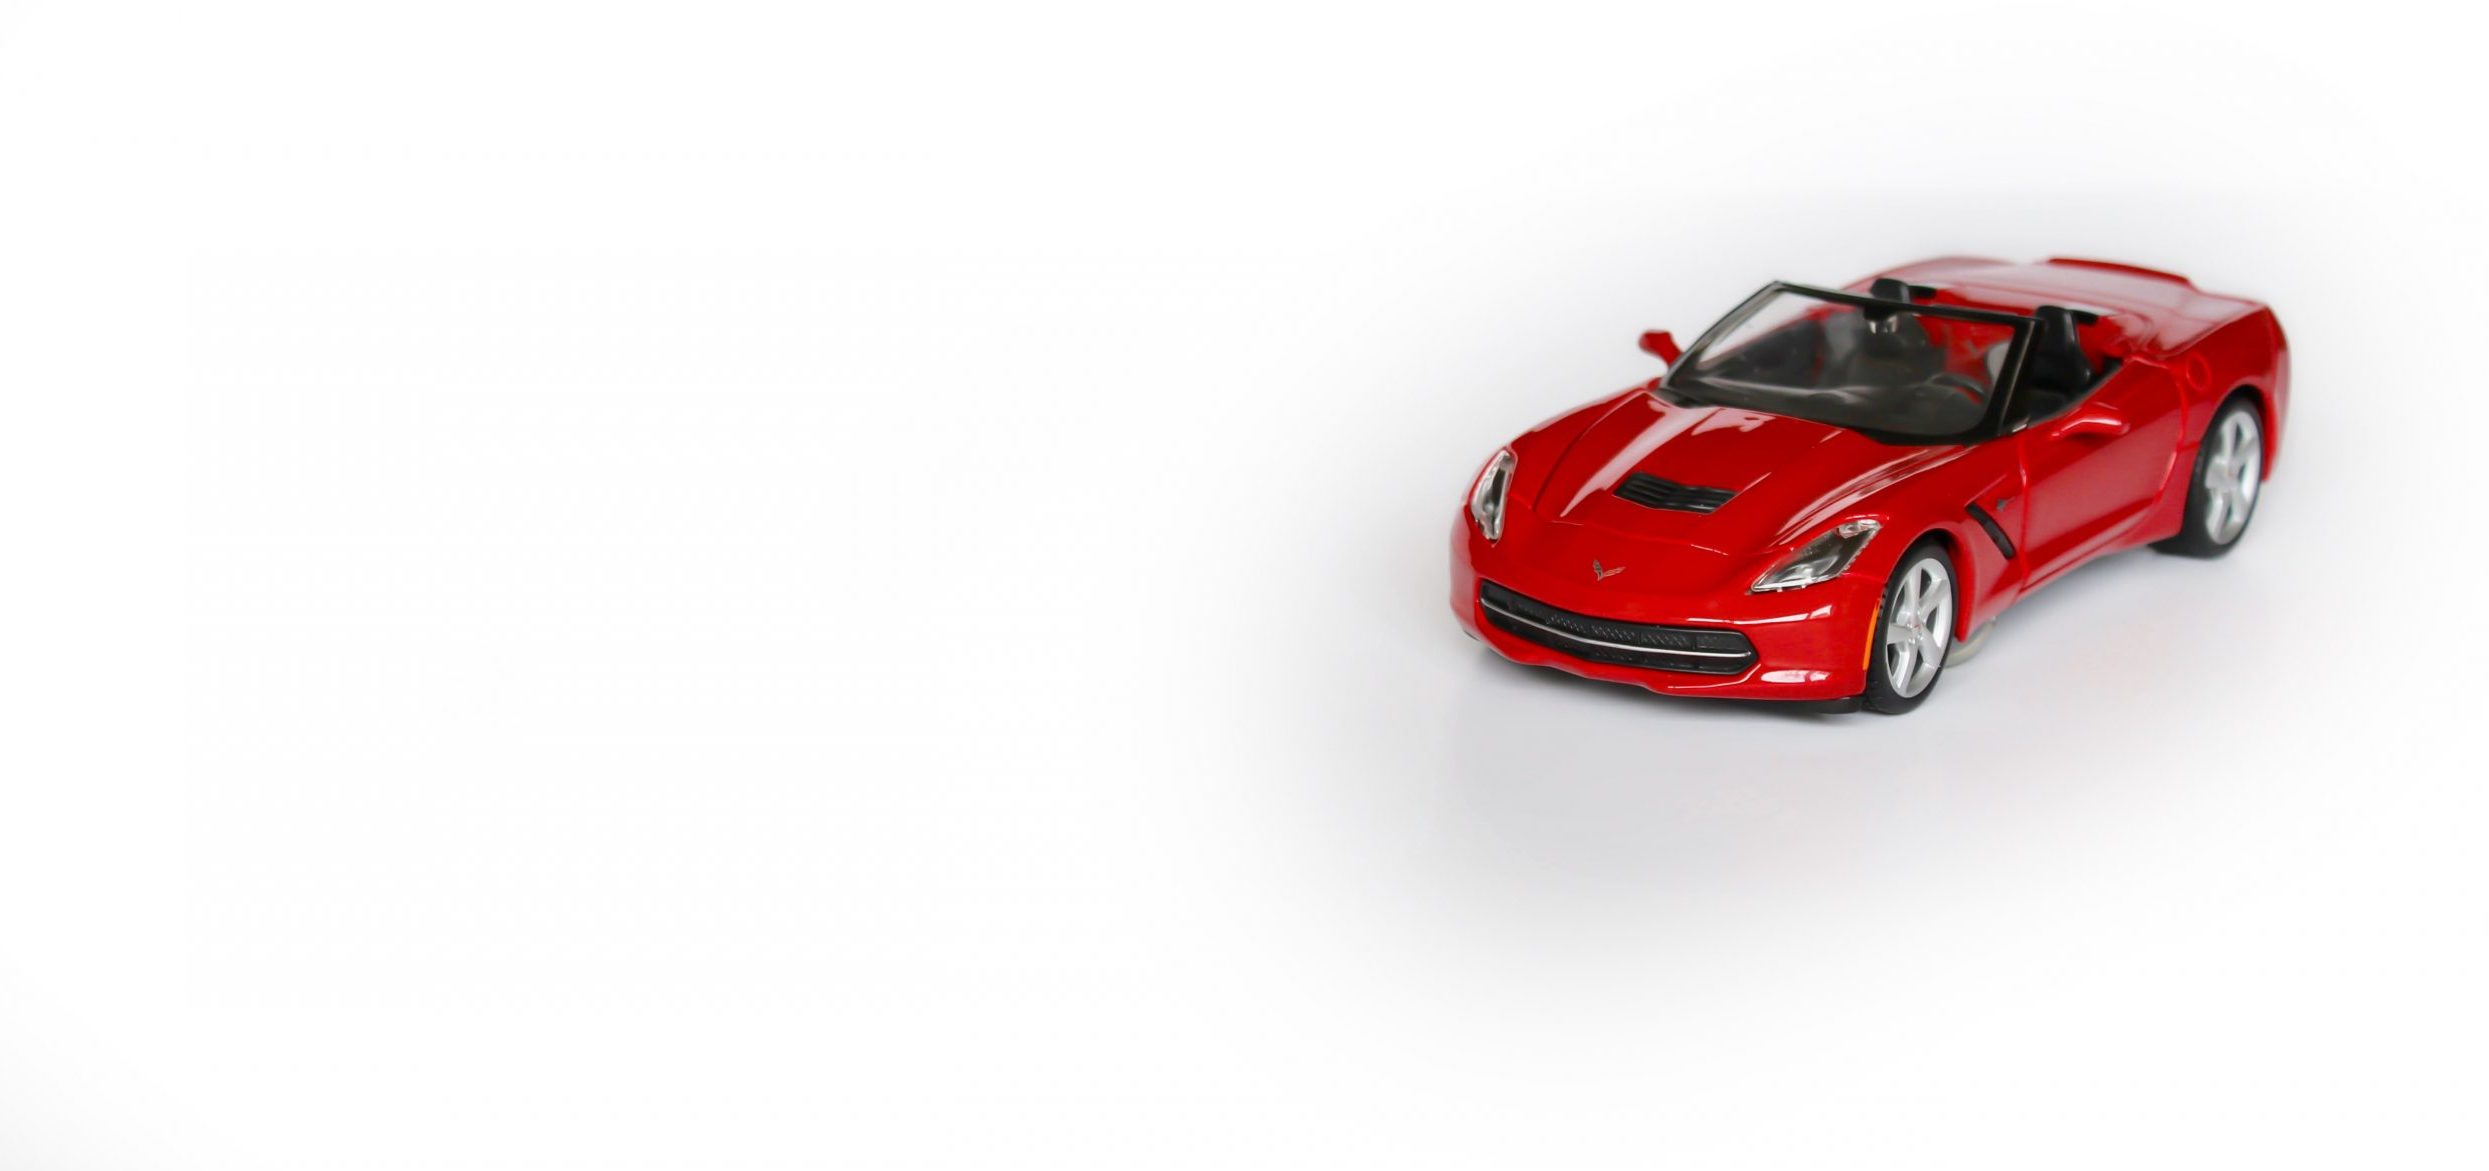 Red Chevrolet Corvette model